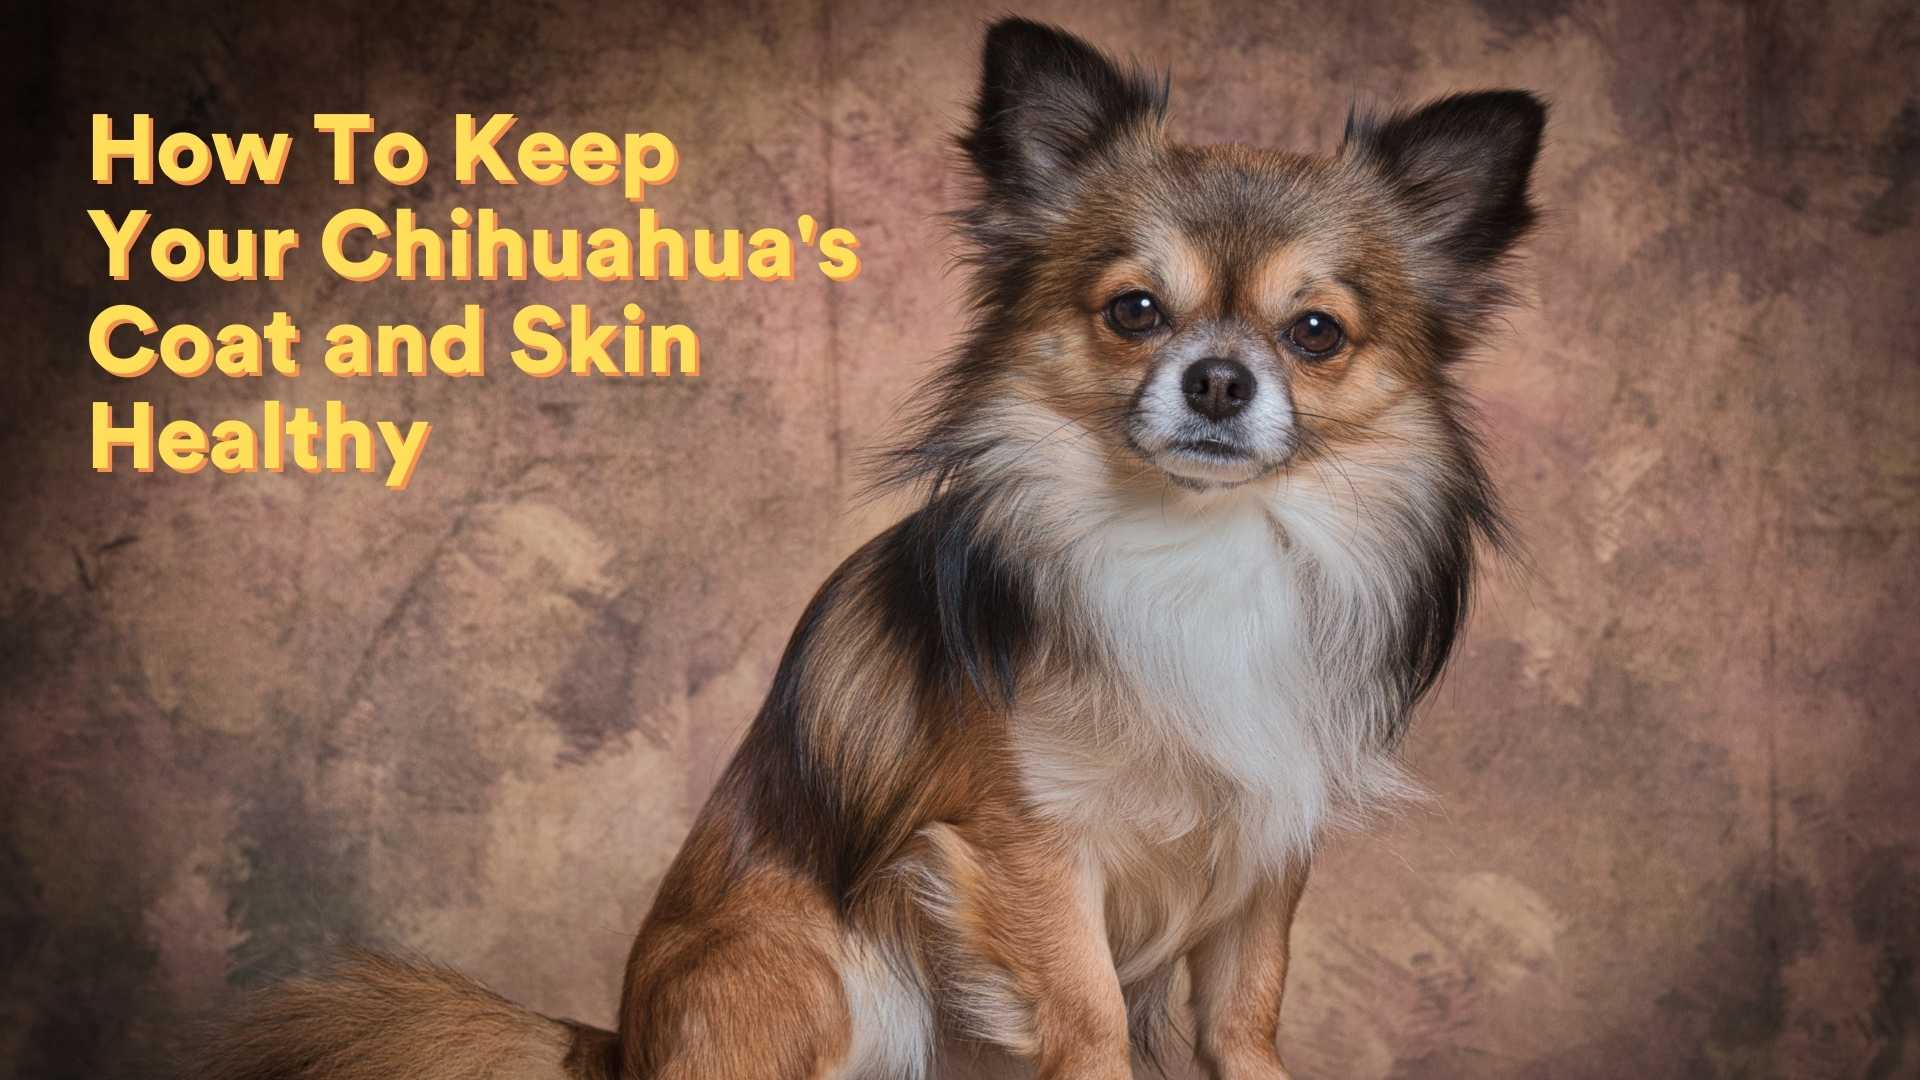 How To Keep Your Chihuahua's Coat and Skin Healthy